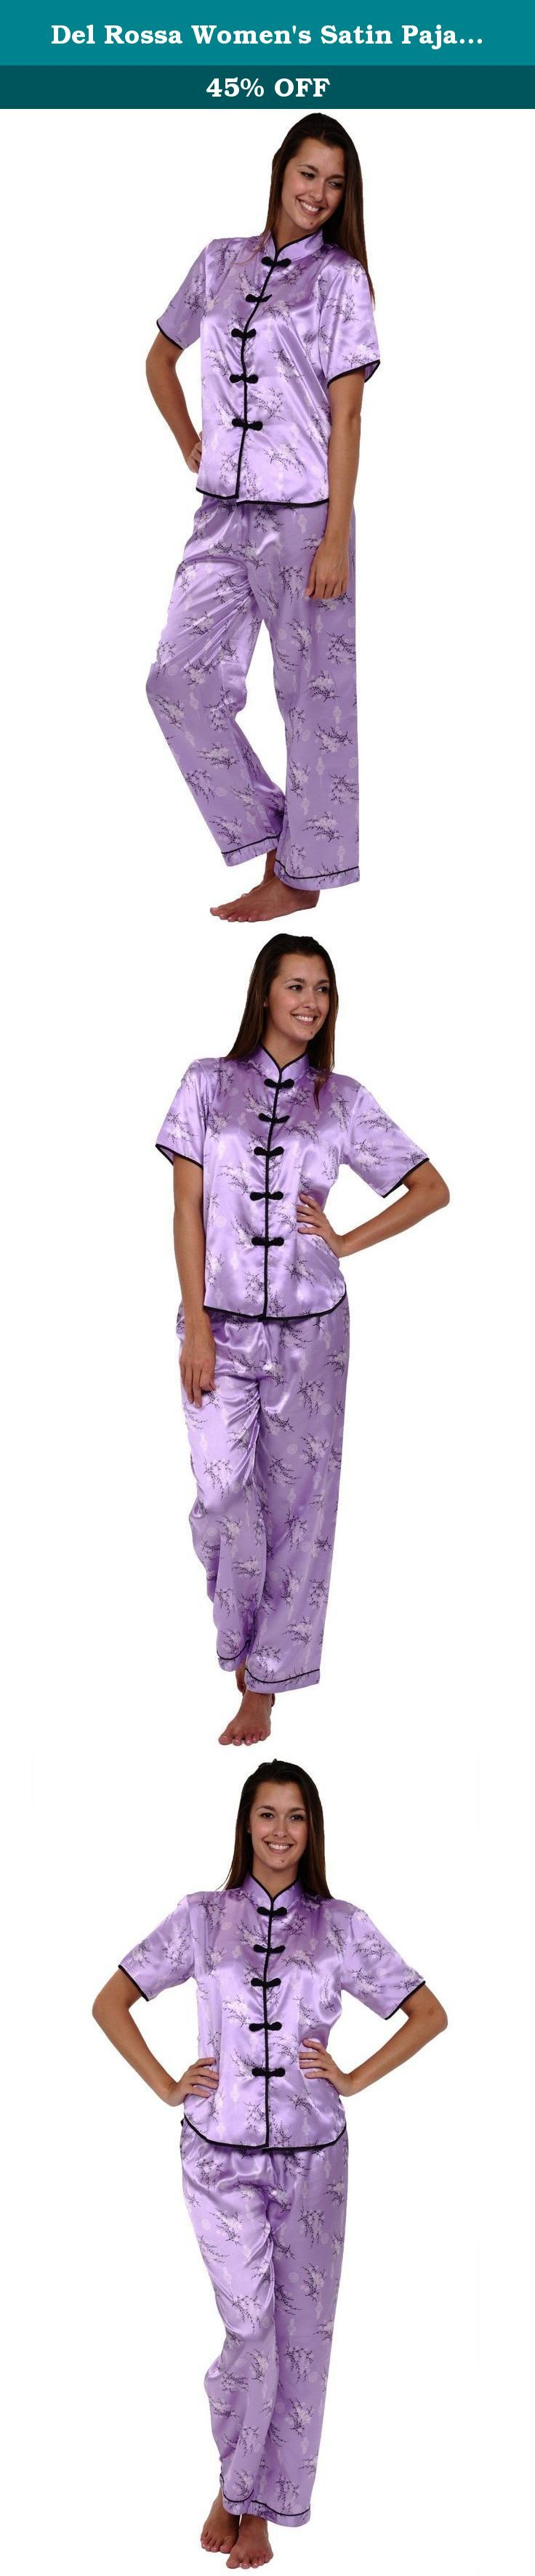 Del Rossa Women's Satin Pajamas, Chinese Inspired Pj Set, Medium Purple (A0728PURMD). This women's satin pajama set from Alexander Del Rossa is comfortable, durable, and classy. Made from premium 100% polyester satin fabric, this women's pj set is cool and easy on the skin. Designed with you in mind, these classic ladies pajamas are perfect for lounging around the house - even when guests are present. Rich in features, we trust that this satin pajama set for women will not disappoint…